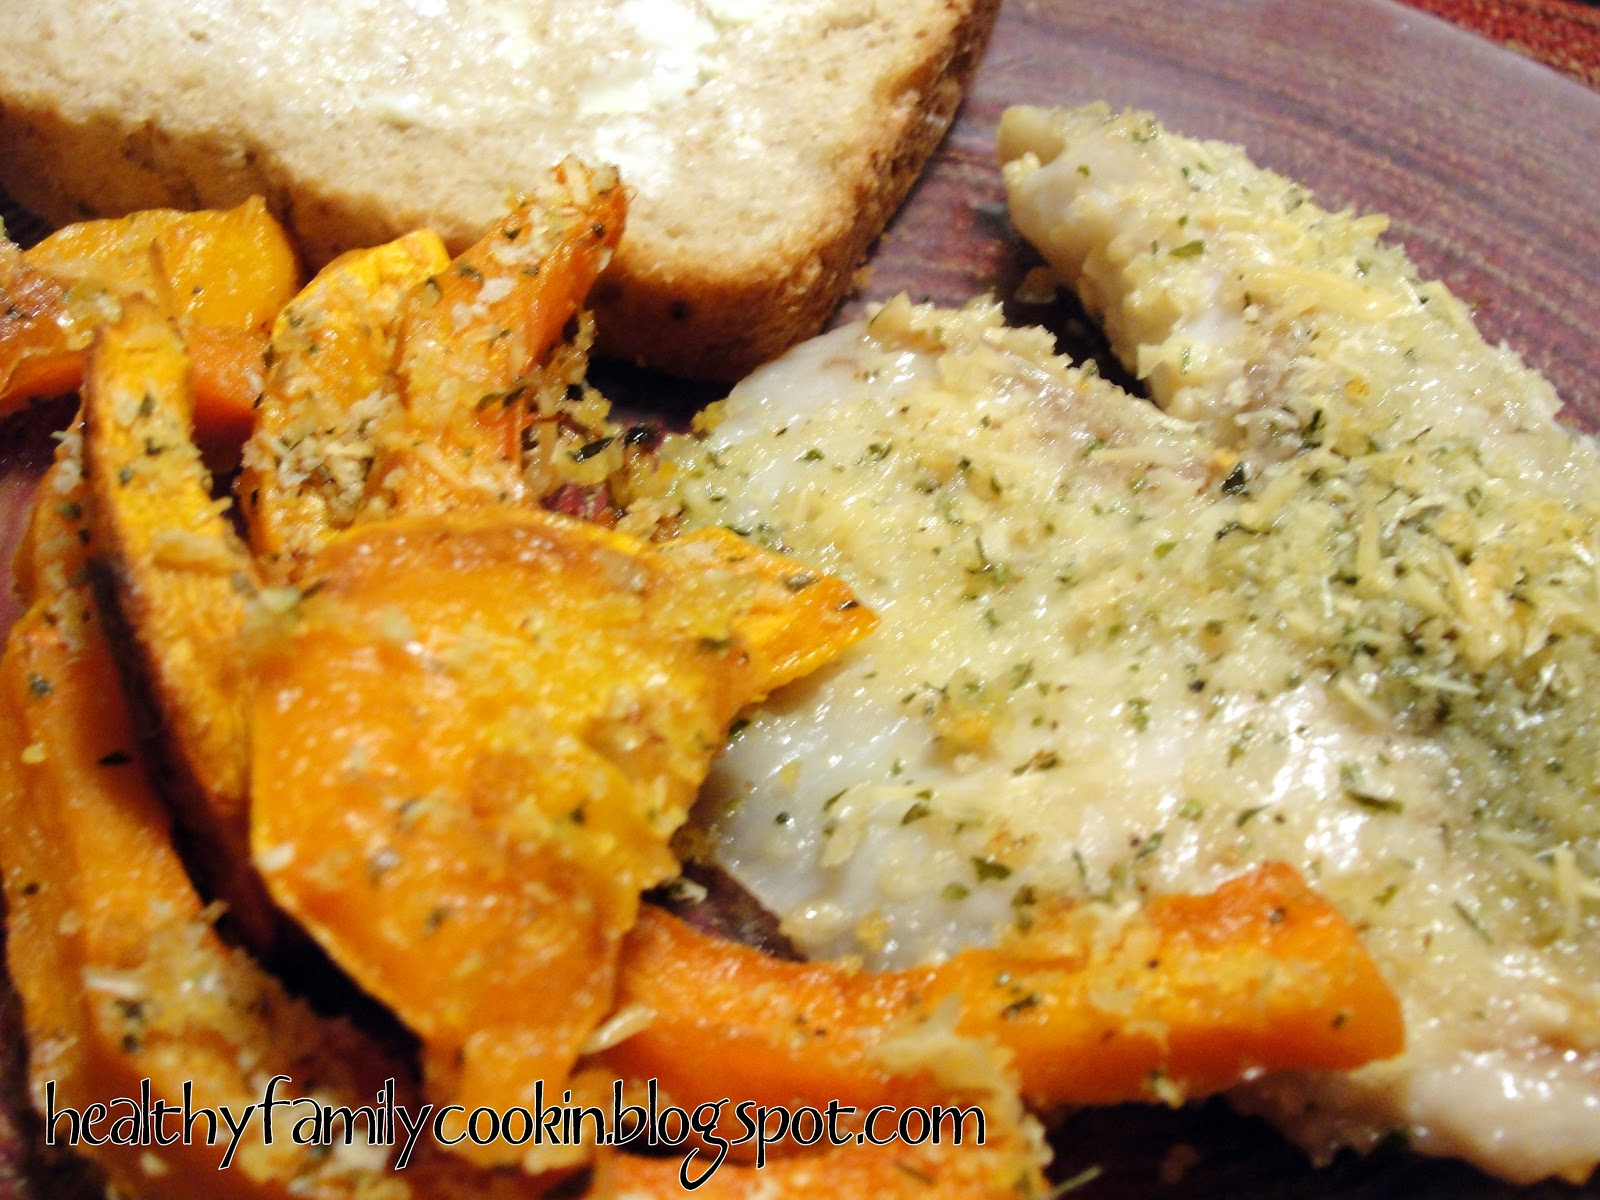 ... source adapted from parmesan butternut squash gratin by betty crocker